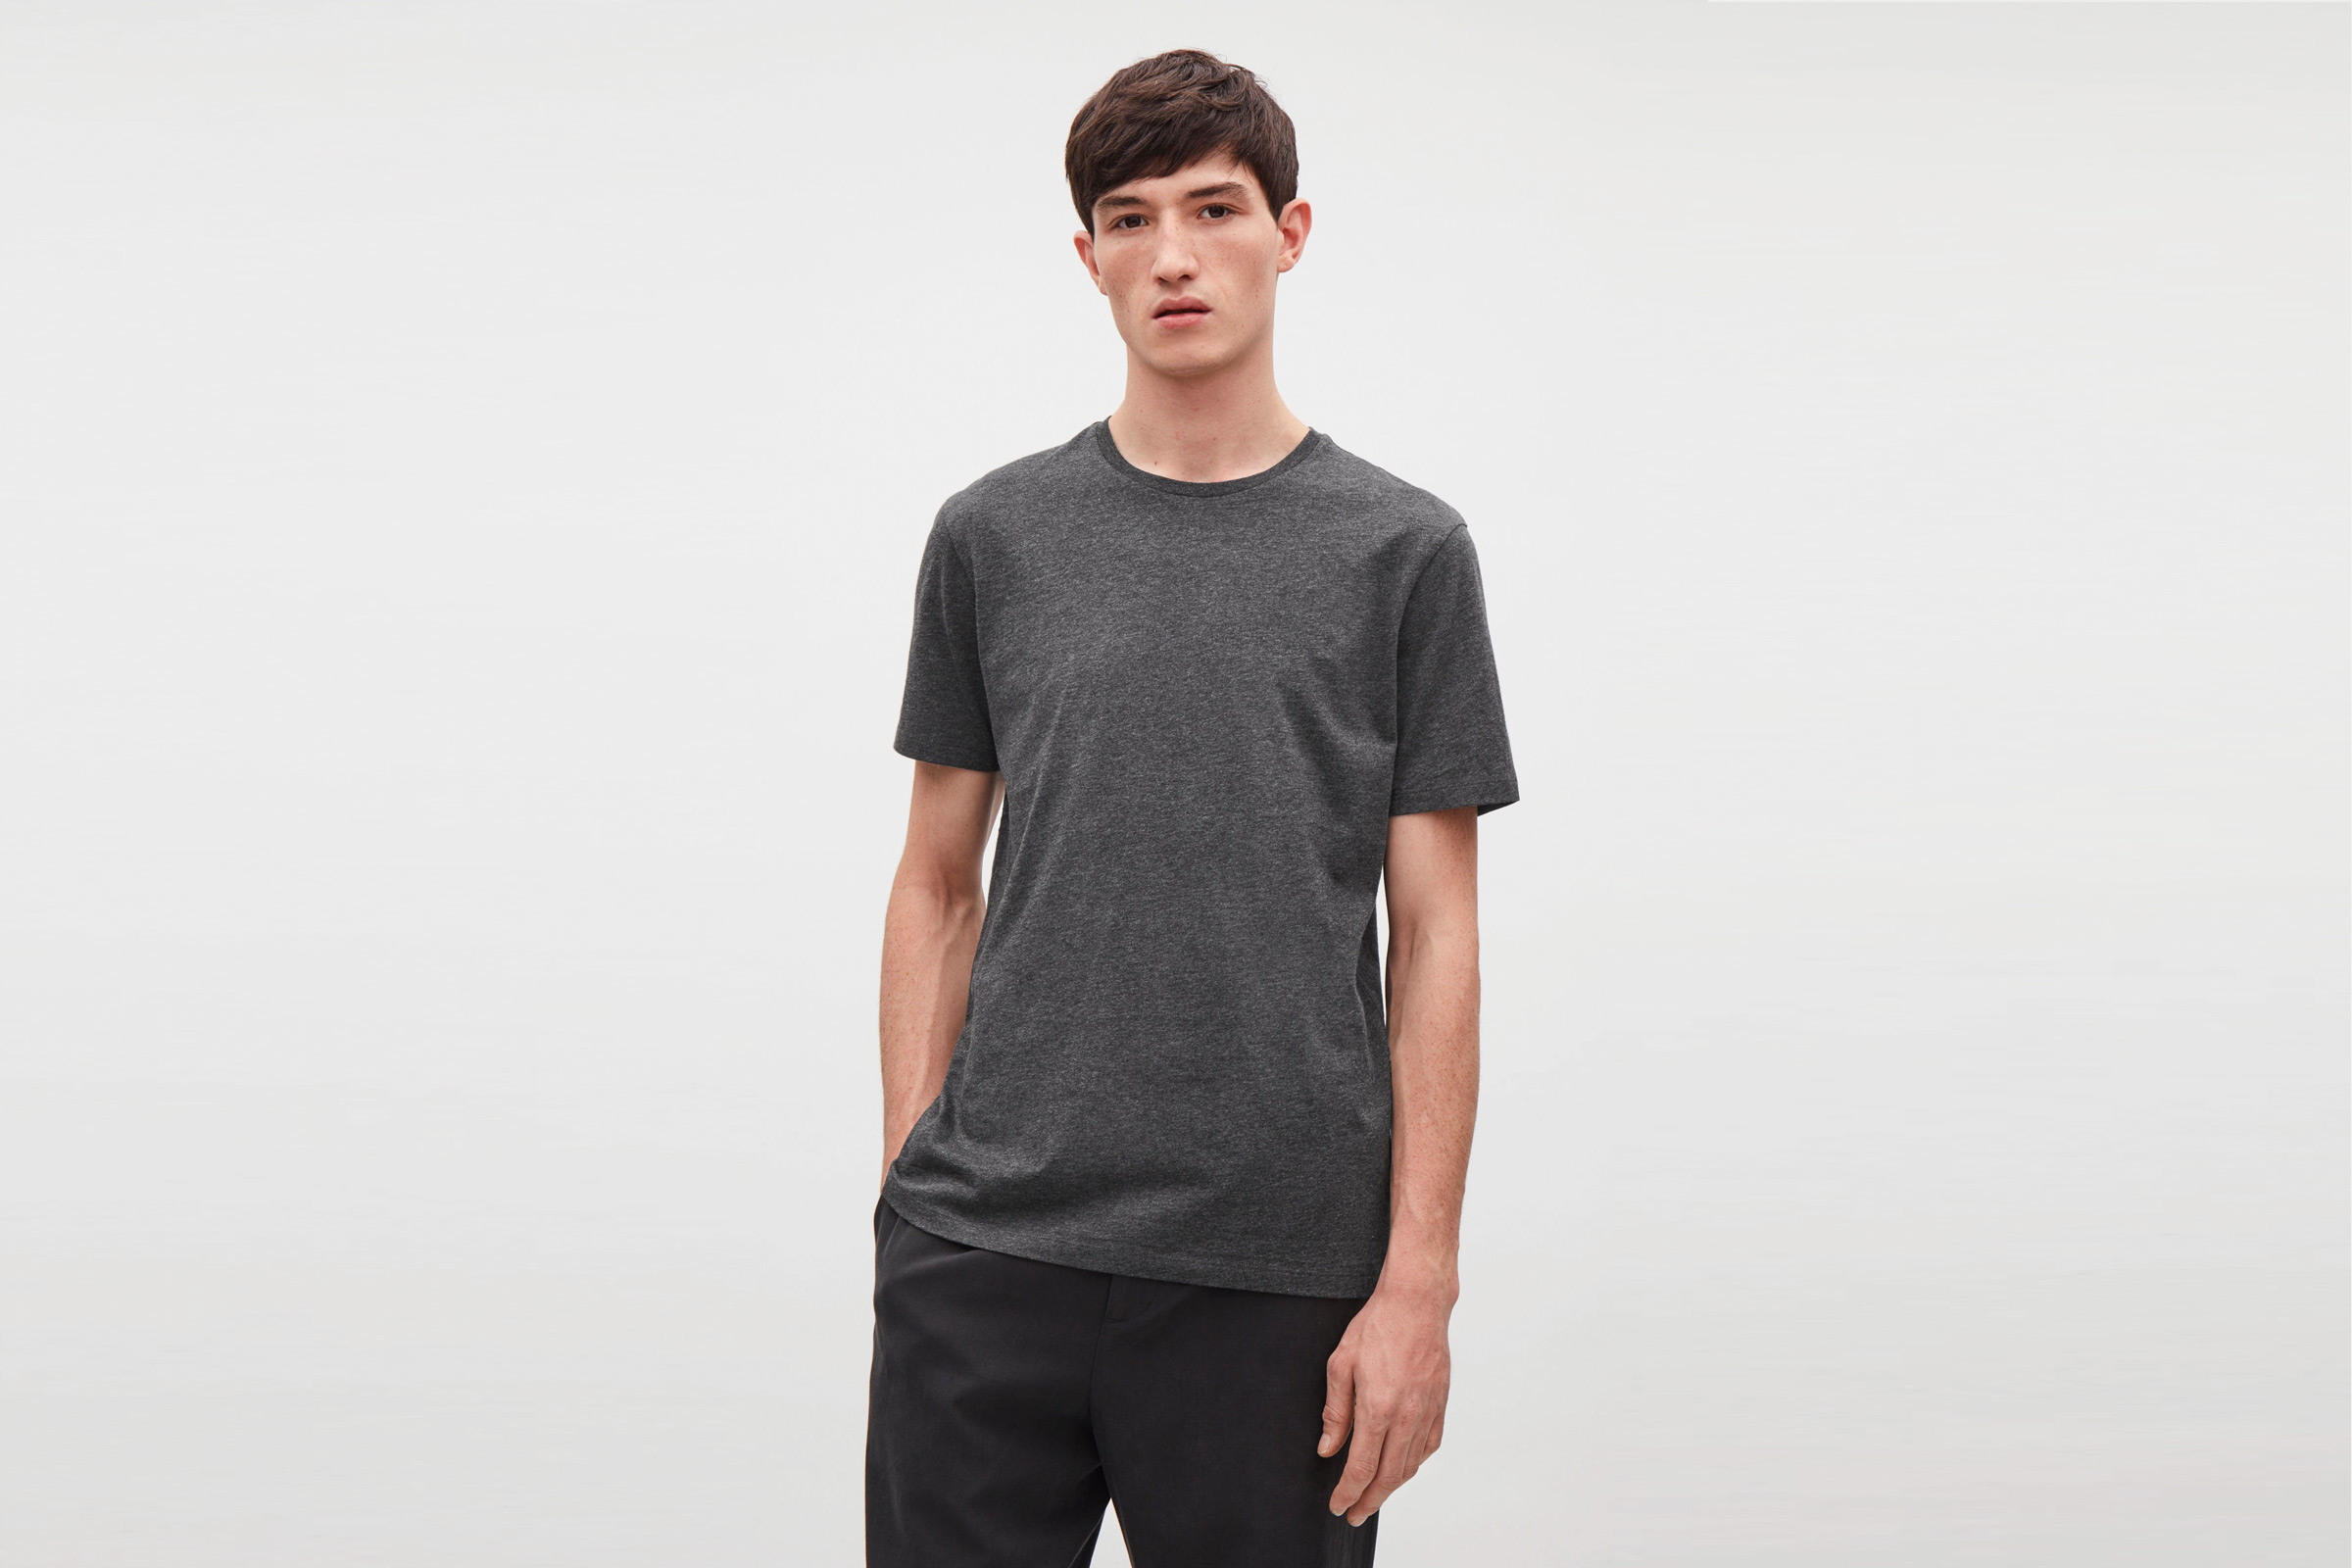 Men's Basic Tees COS